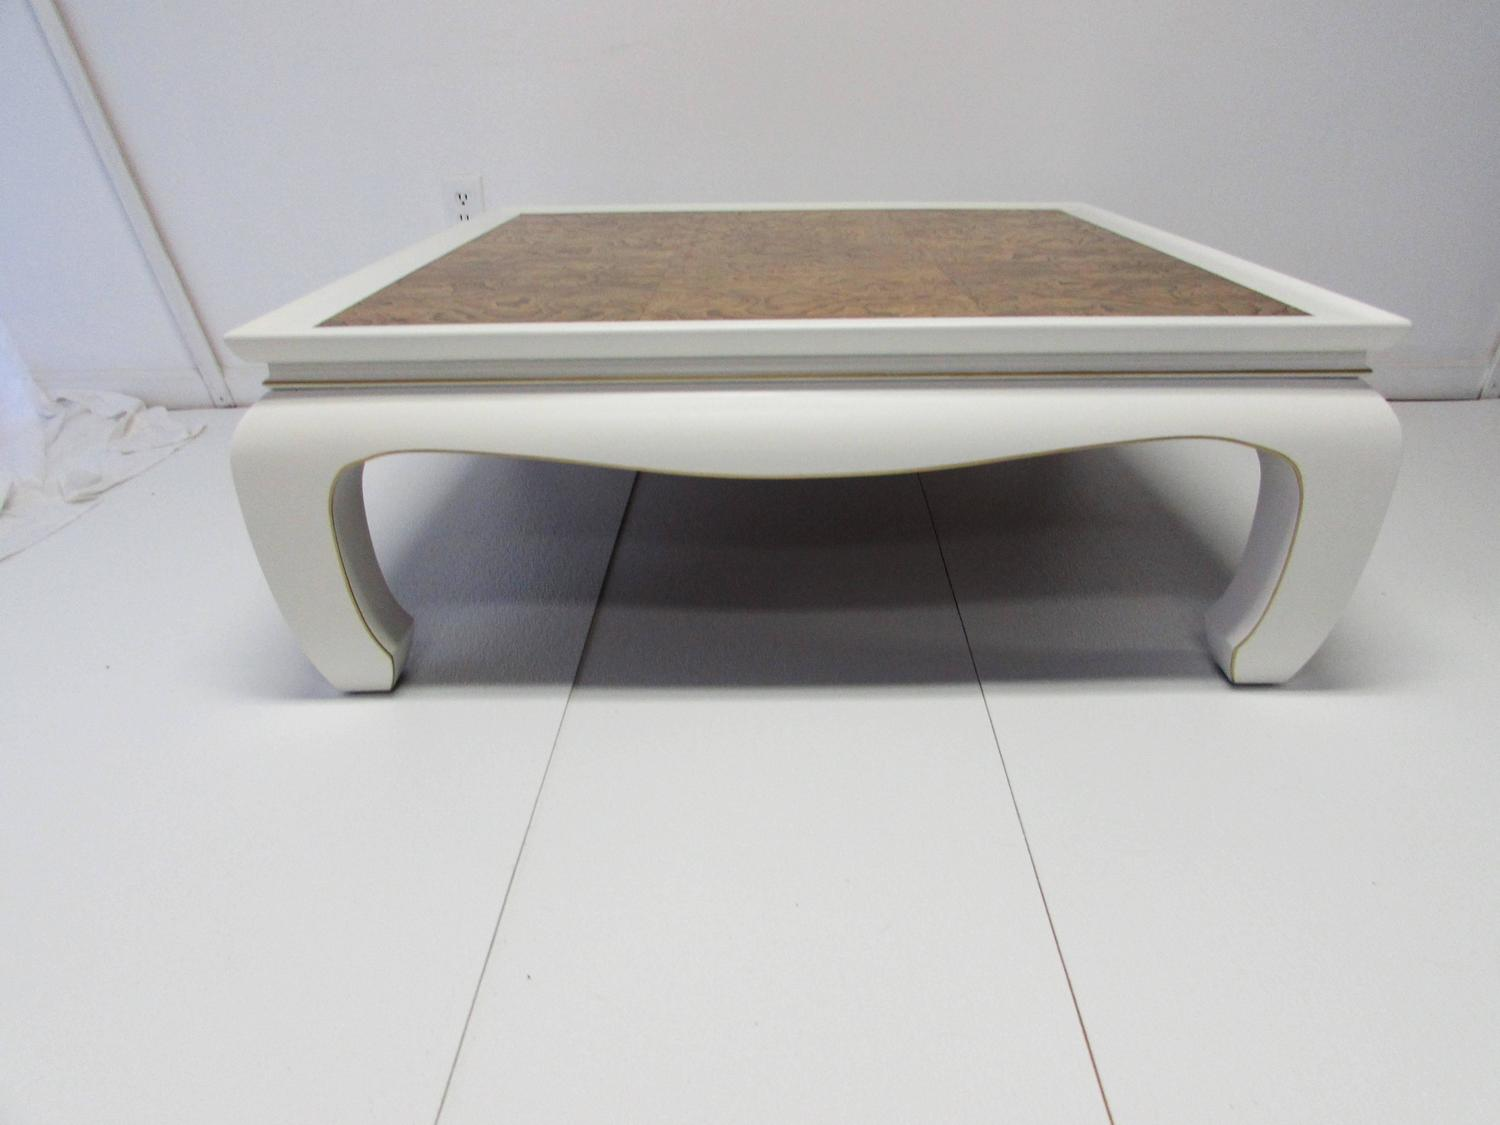 Ming-Style Lacquer and Burl Wood Coffee Table at 1stdibs